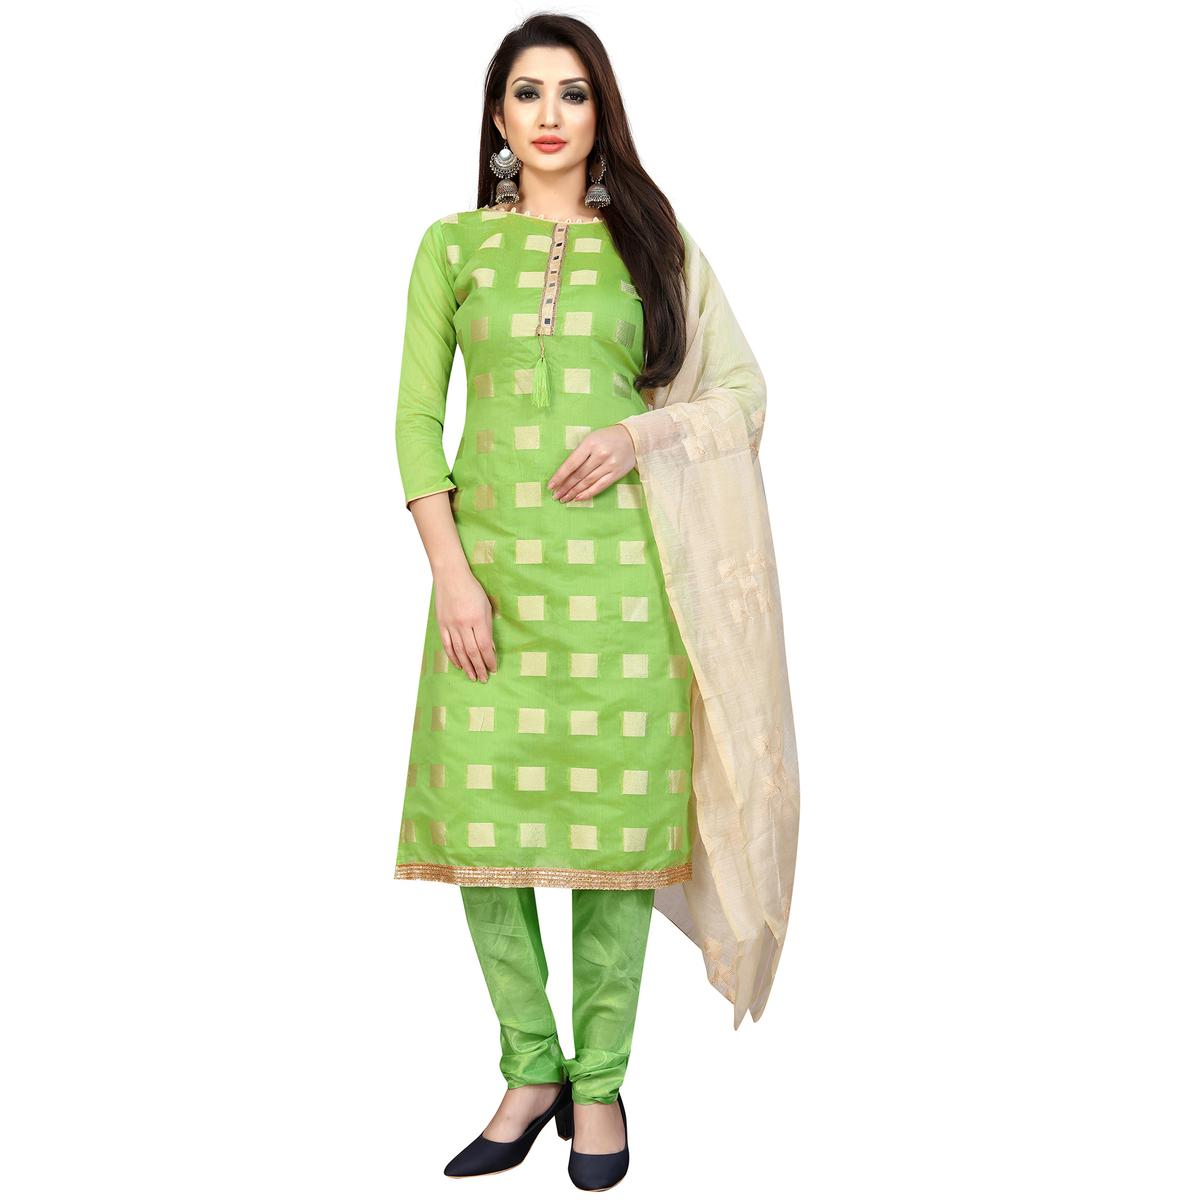 Hypnotic Pista Green Colored Casual Wear Embrodiered Polyester-Cotton Dress Material